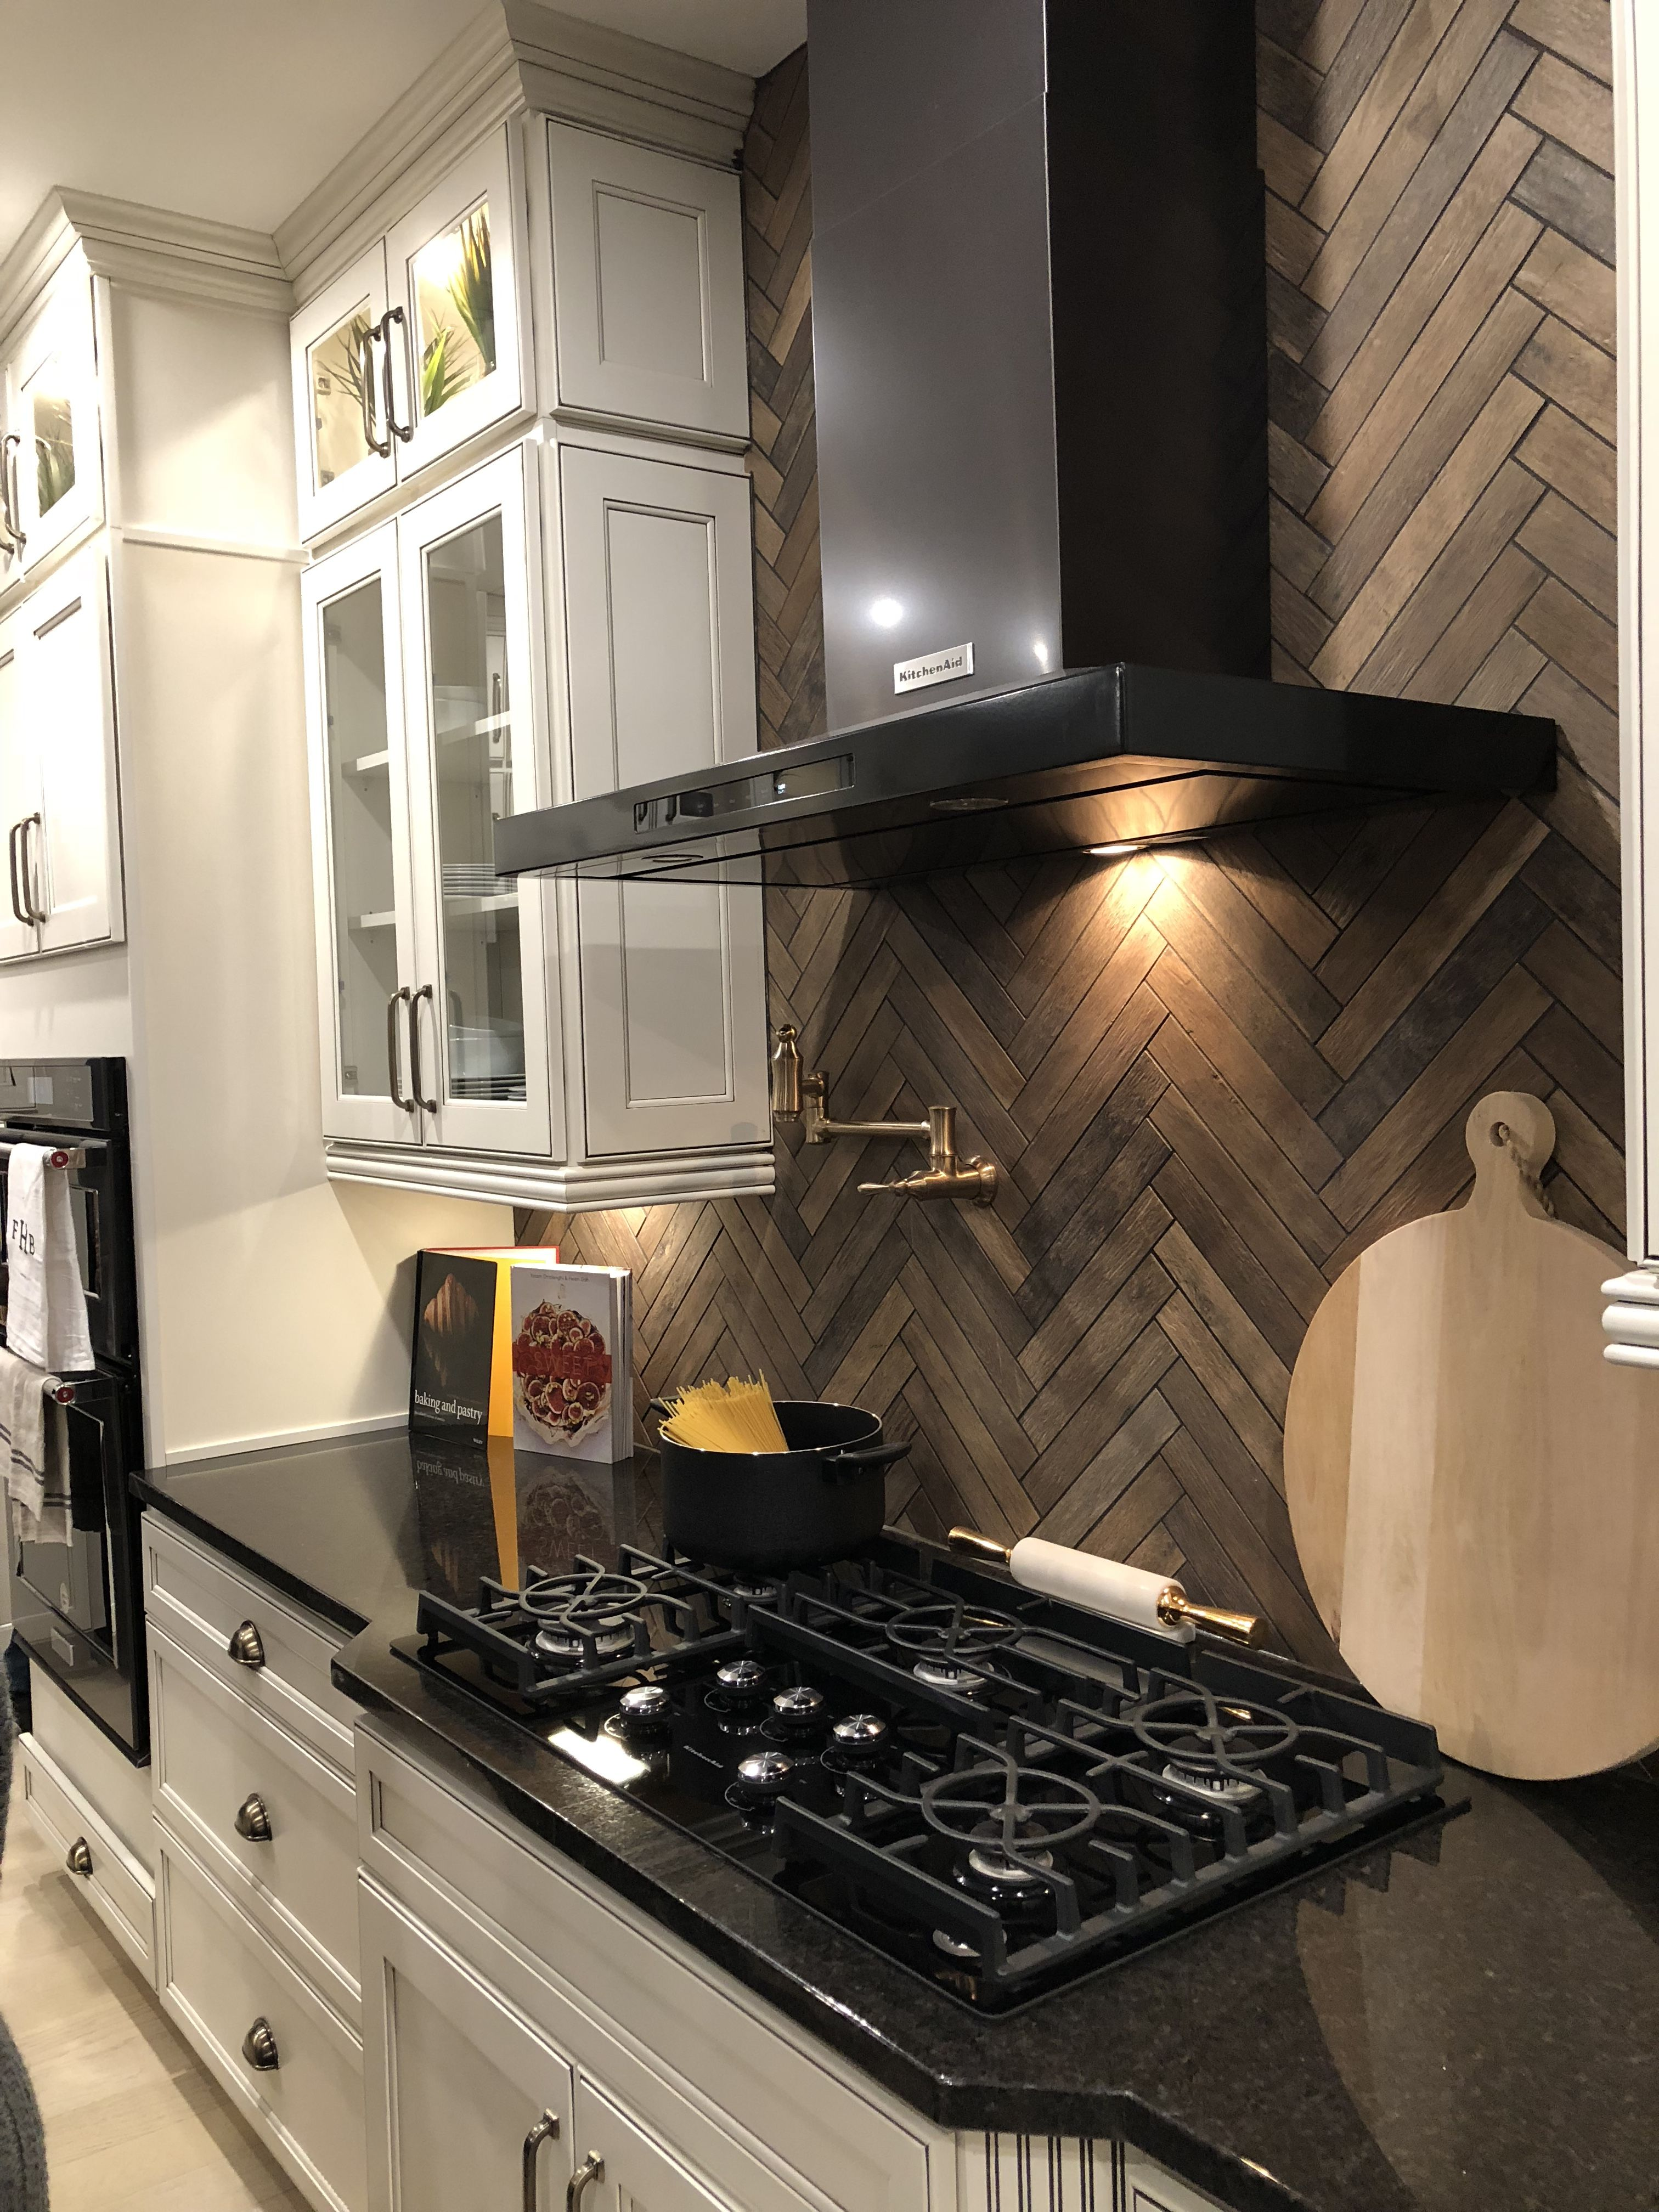 Kitchen by John Long on Indianapolis Home Show